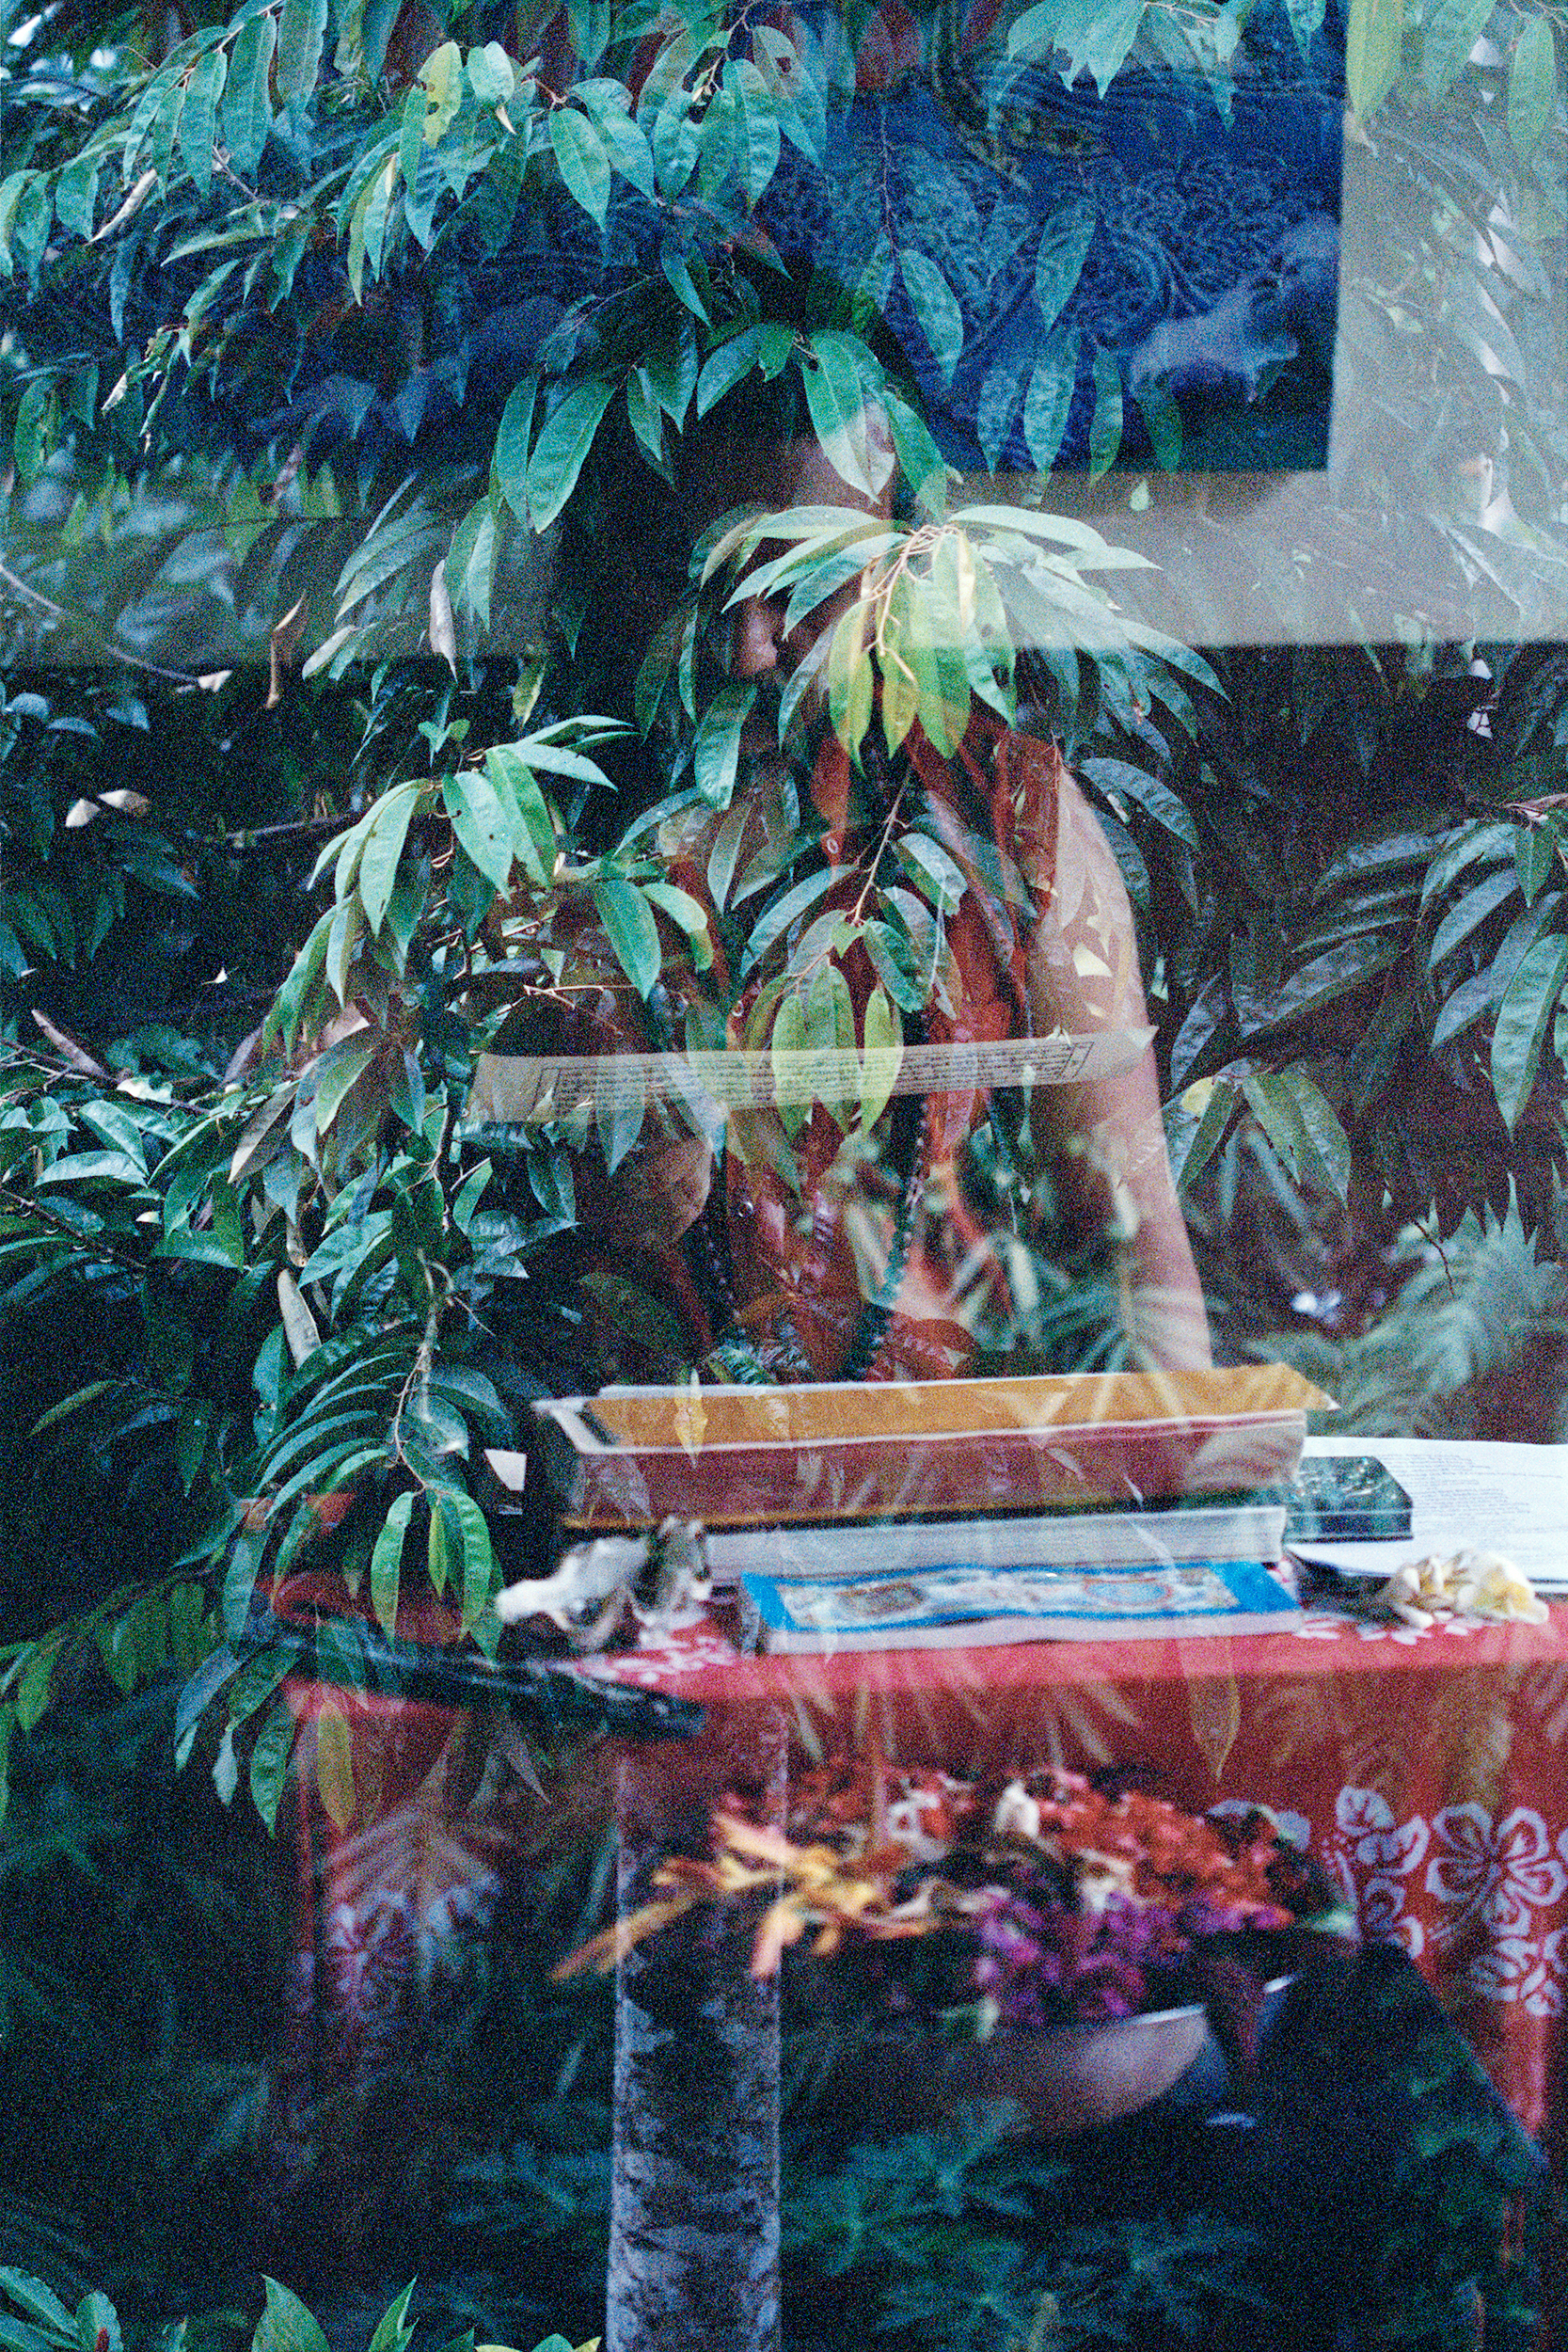 Roots Of Humanity, analogue double exposure, Ubud 2014